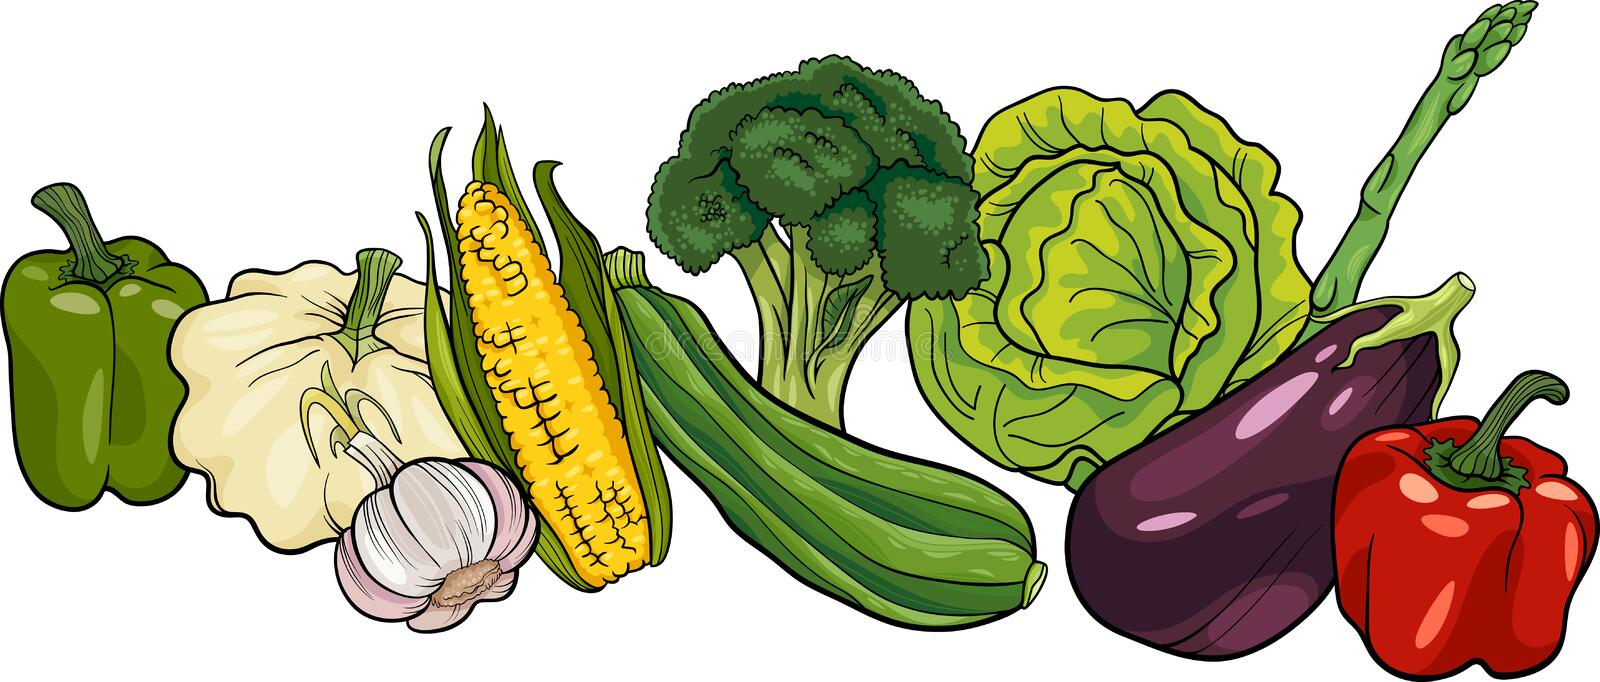 Vegetables big group cartoon illustration vector illustration